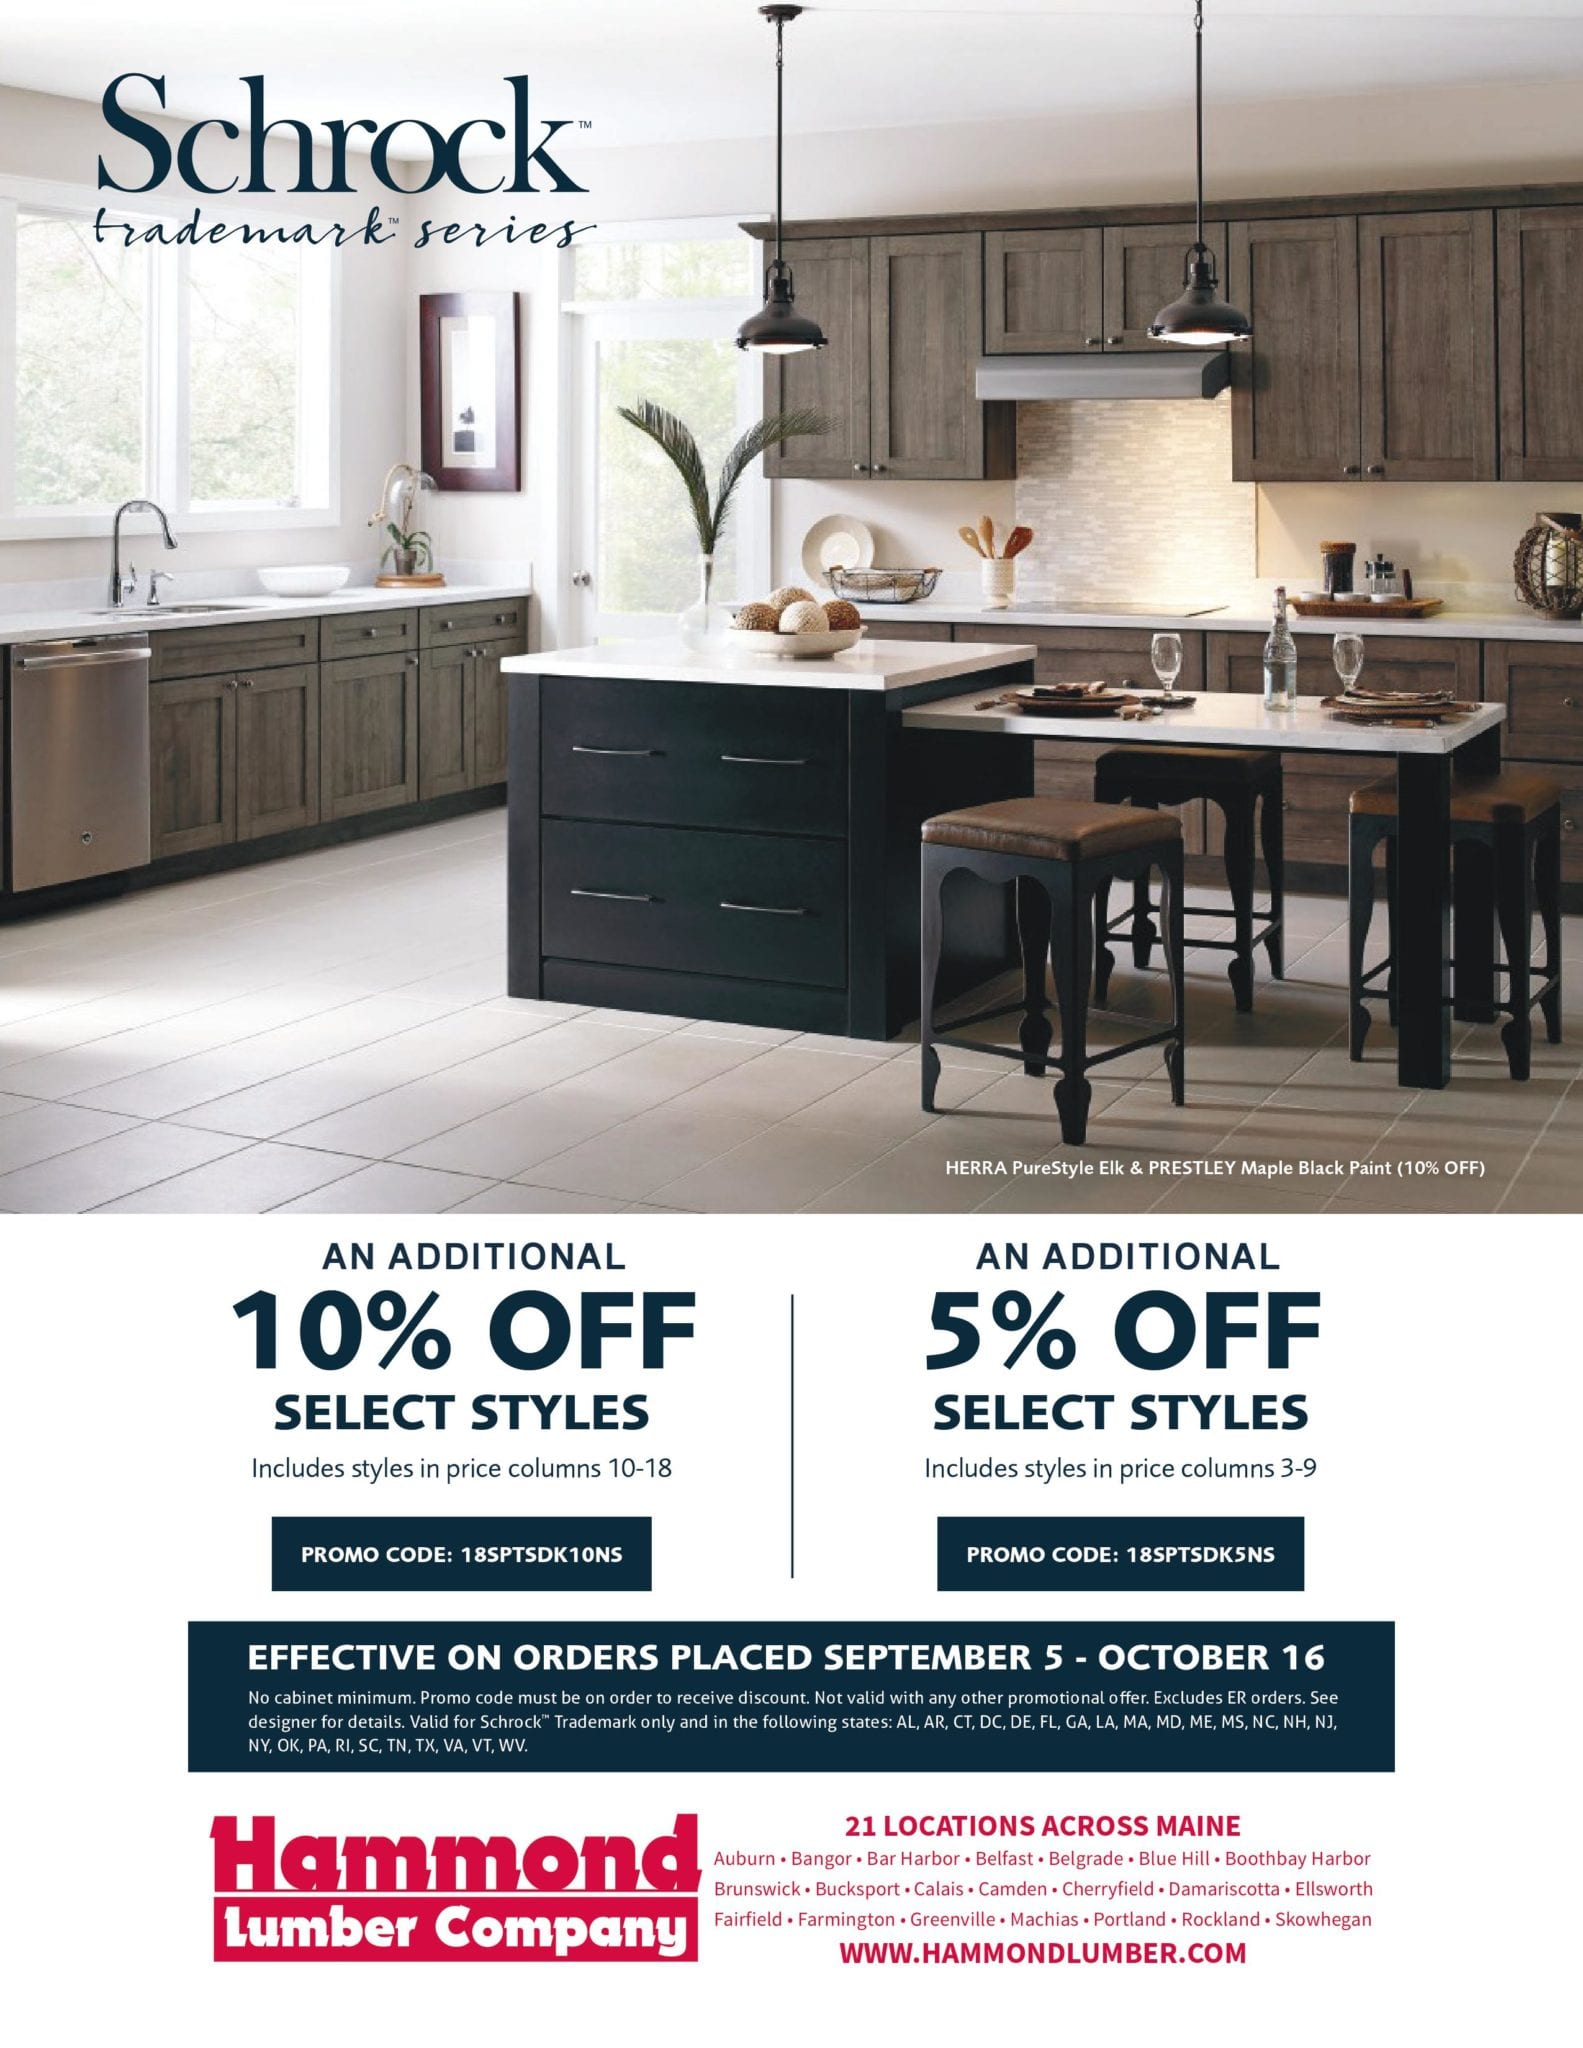 Schrock Cabinetry Savings 10 Off Select Styles 5